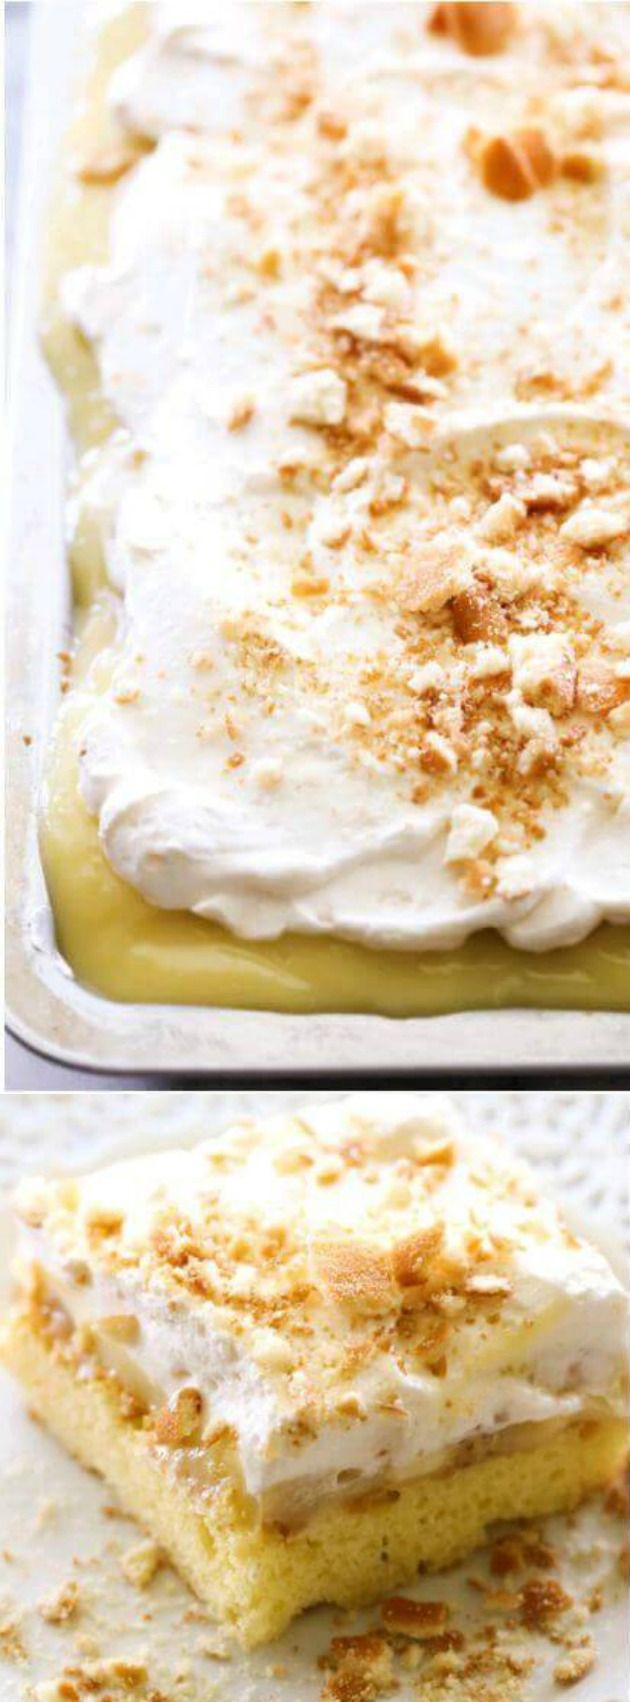 This Banana Cream Pie Sheet Cake recipe from Chef In Training is a delicious and simple sweet treat that you're really going to love! It's topped with the most incredible banana pudding and homemade whipped cream and is definitely a MUST MAKE dessert!